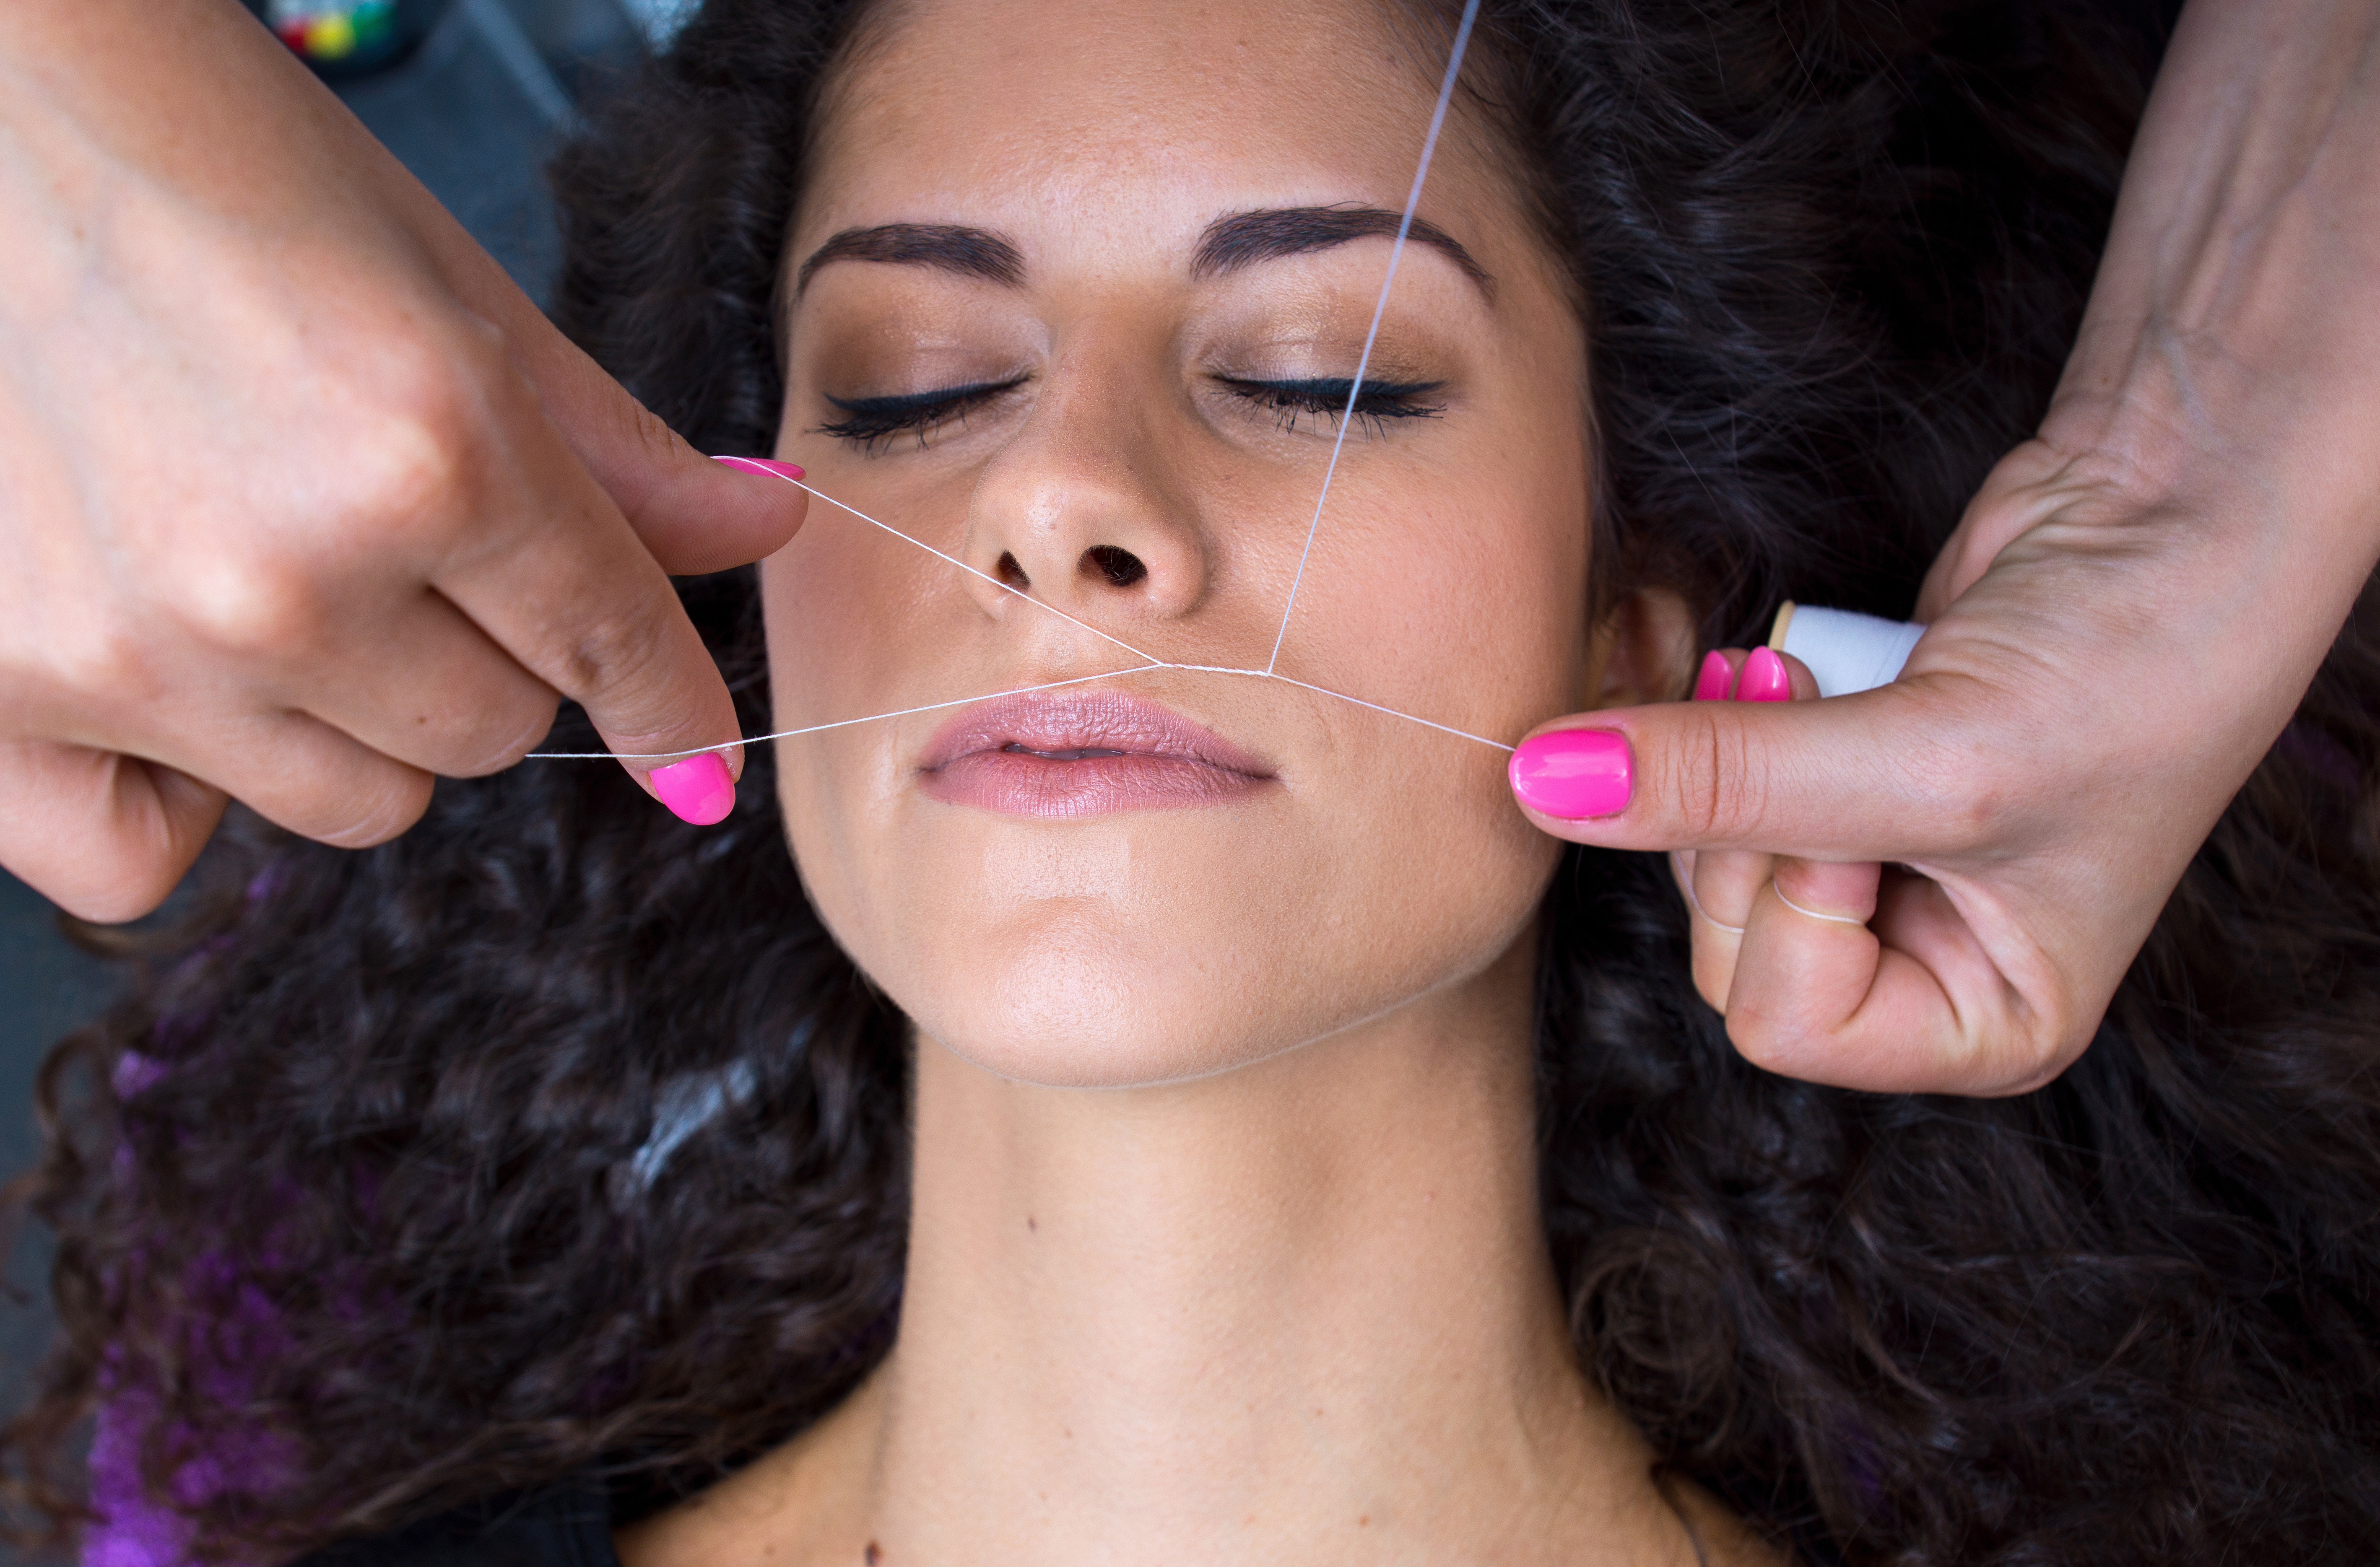 woman getting facial hair removal threading procedure threading